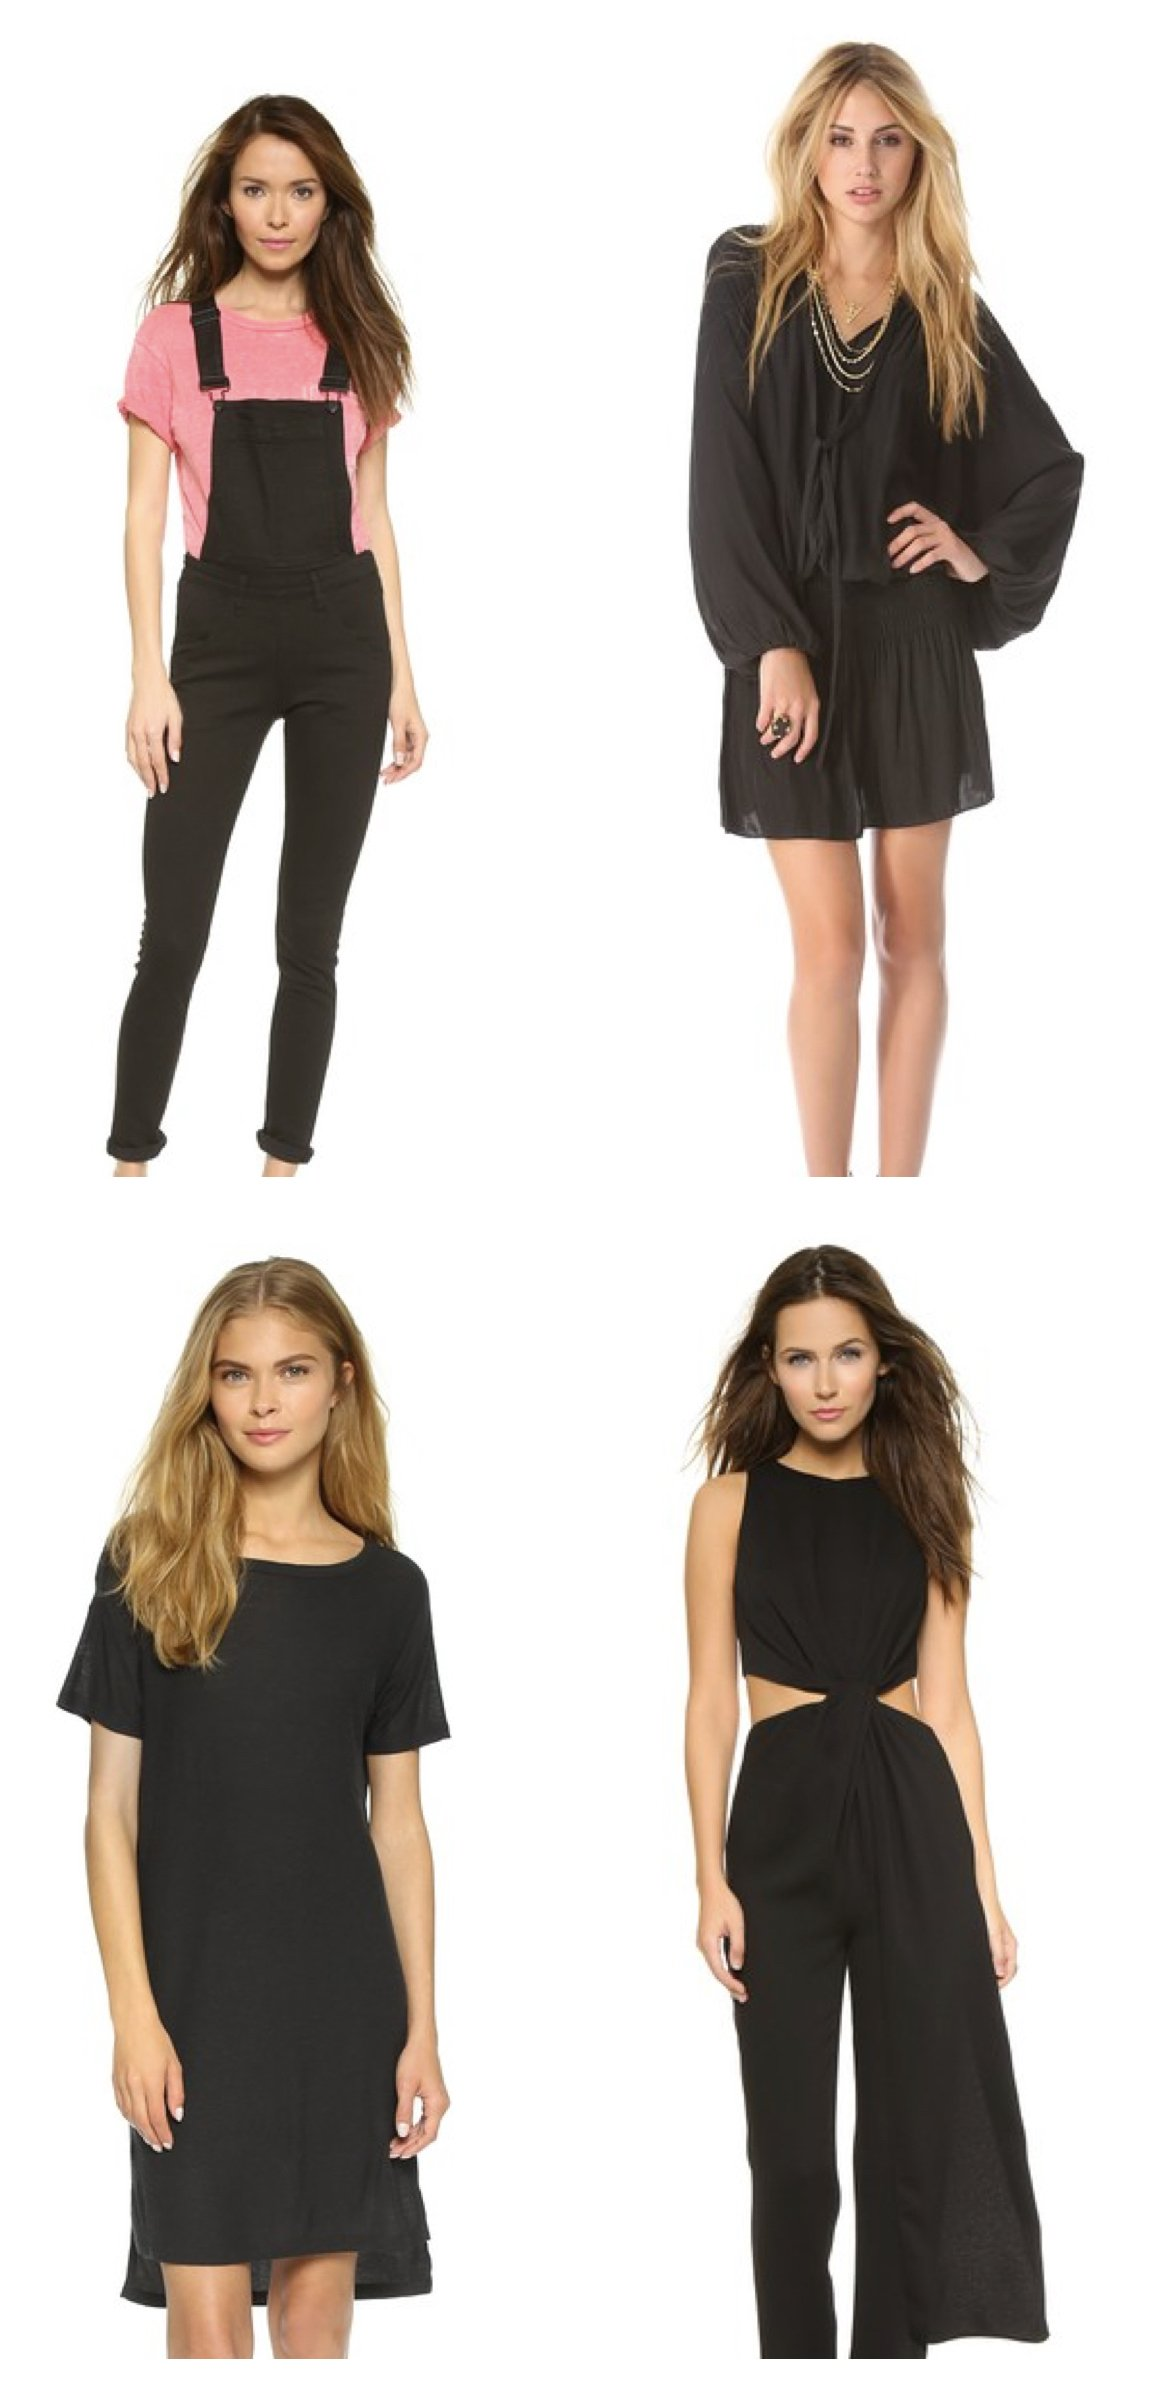 Black Dinner Party Outfits, What to Wear to a Taylor Swift Dinner Party (or any Dinner Party!)